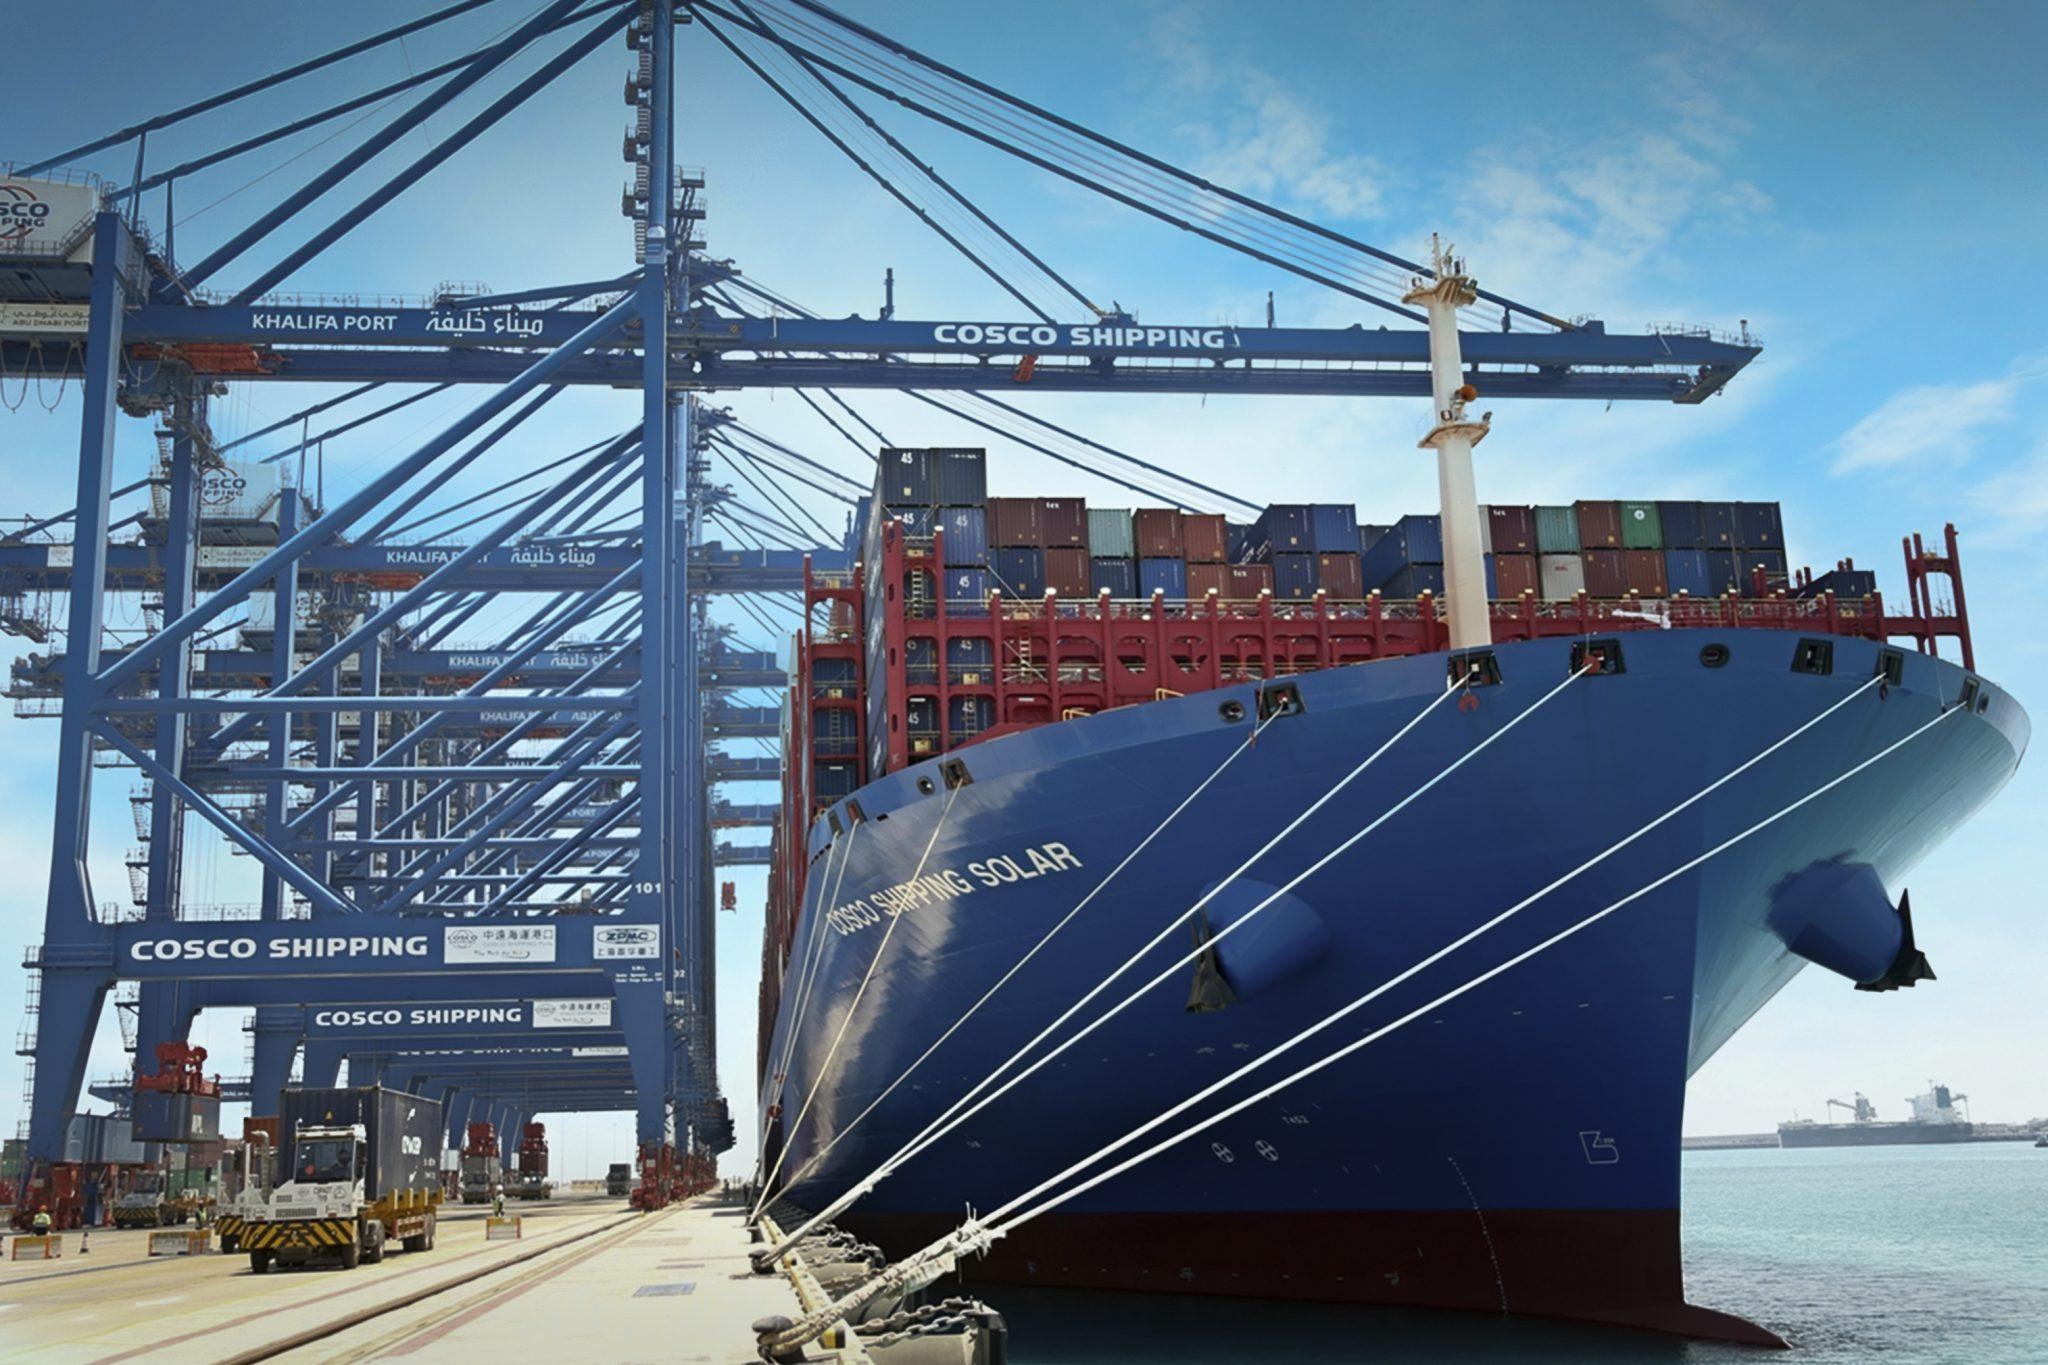 Khalifa Port cements its position as a global maritime hub with